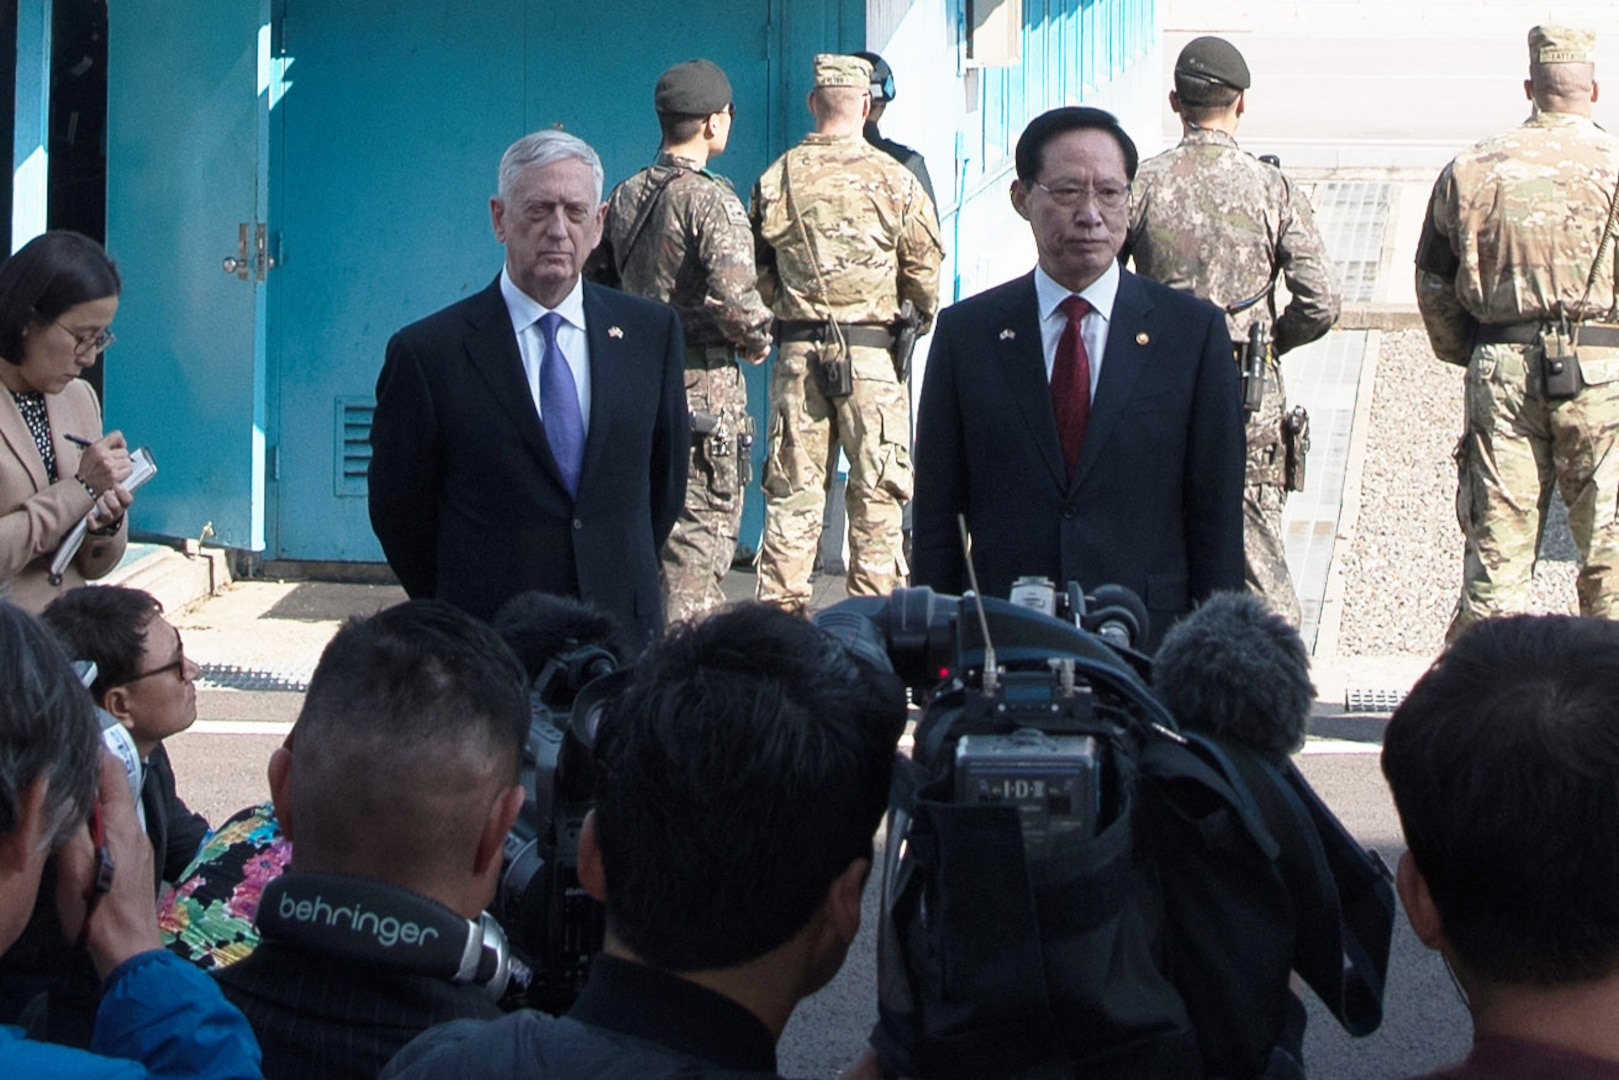 Remarks by Secretary Mattis and Min. Song at the DMZ, South Korea